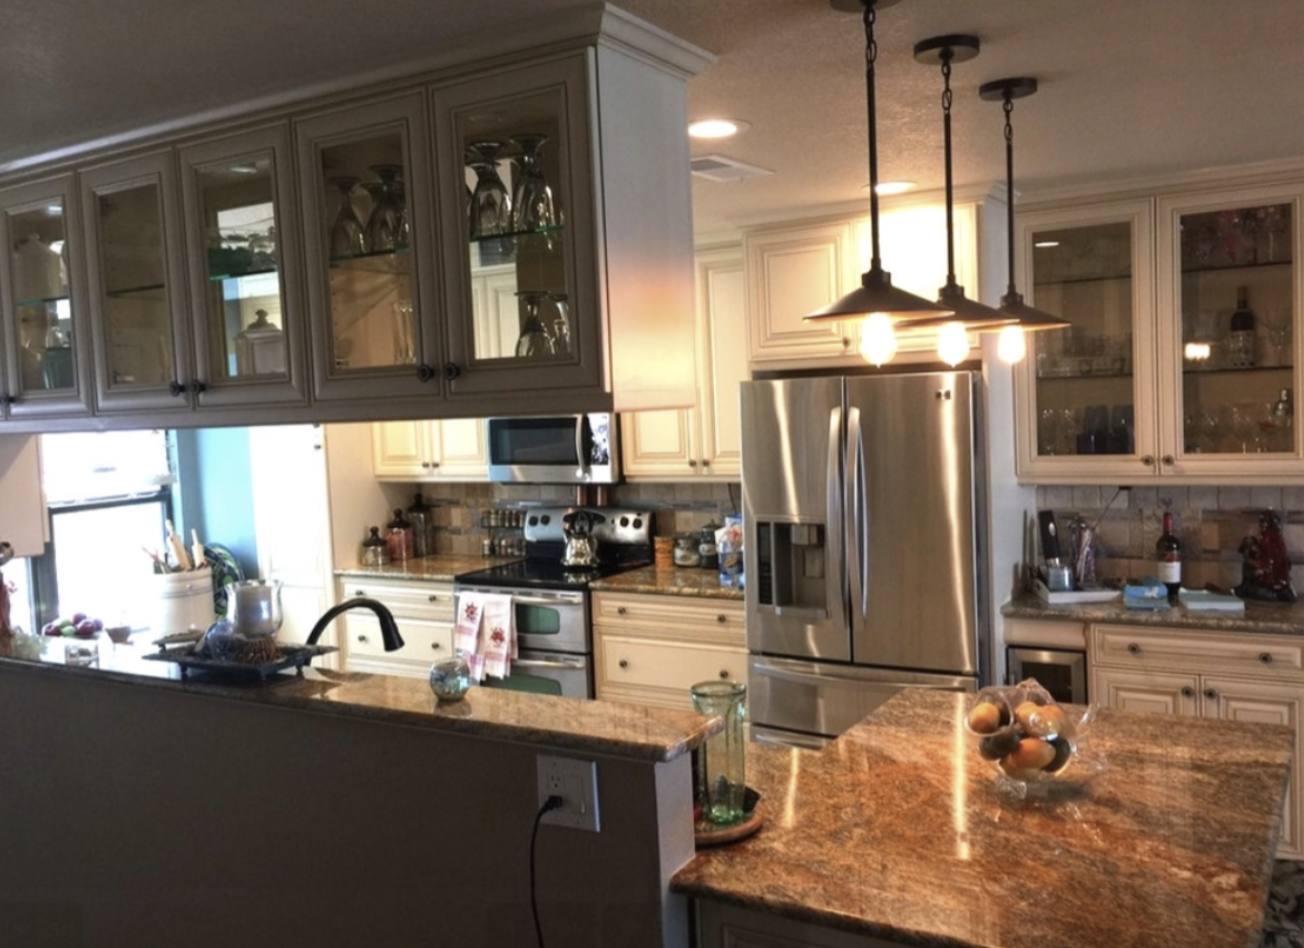 Midtown Cabinetry and Designs Introduces Kitchen Remodelling Services